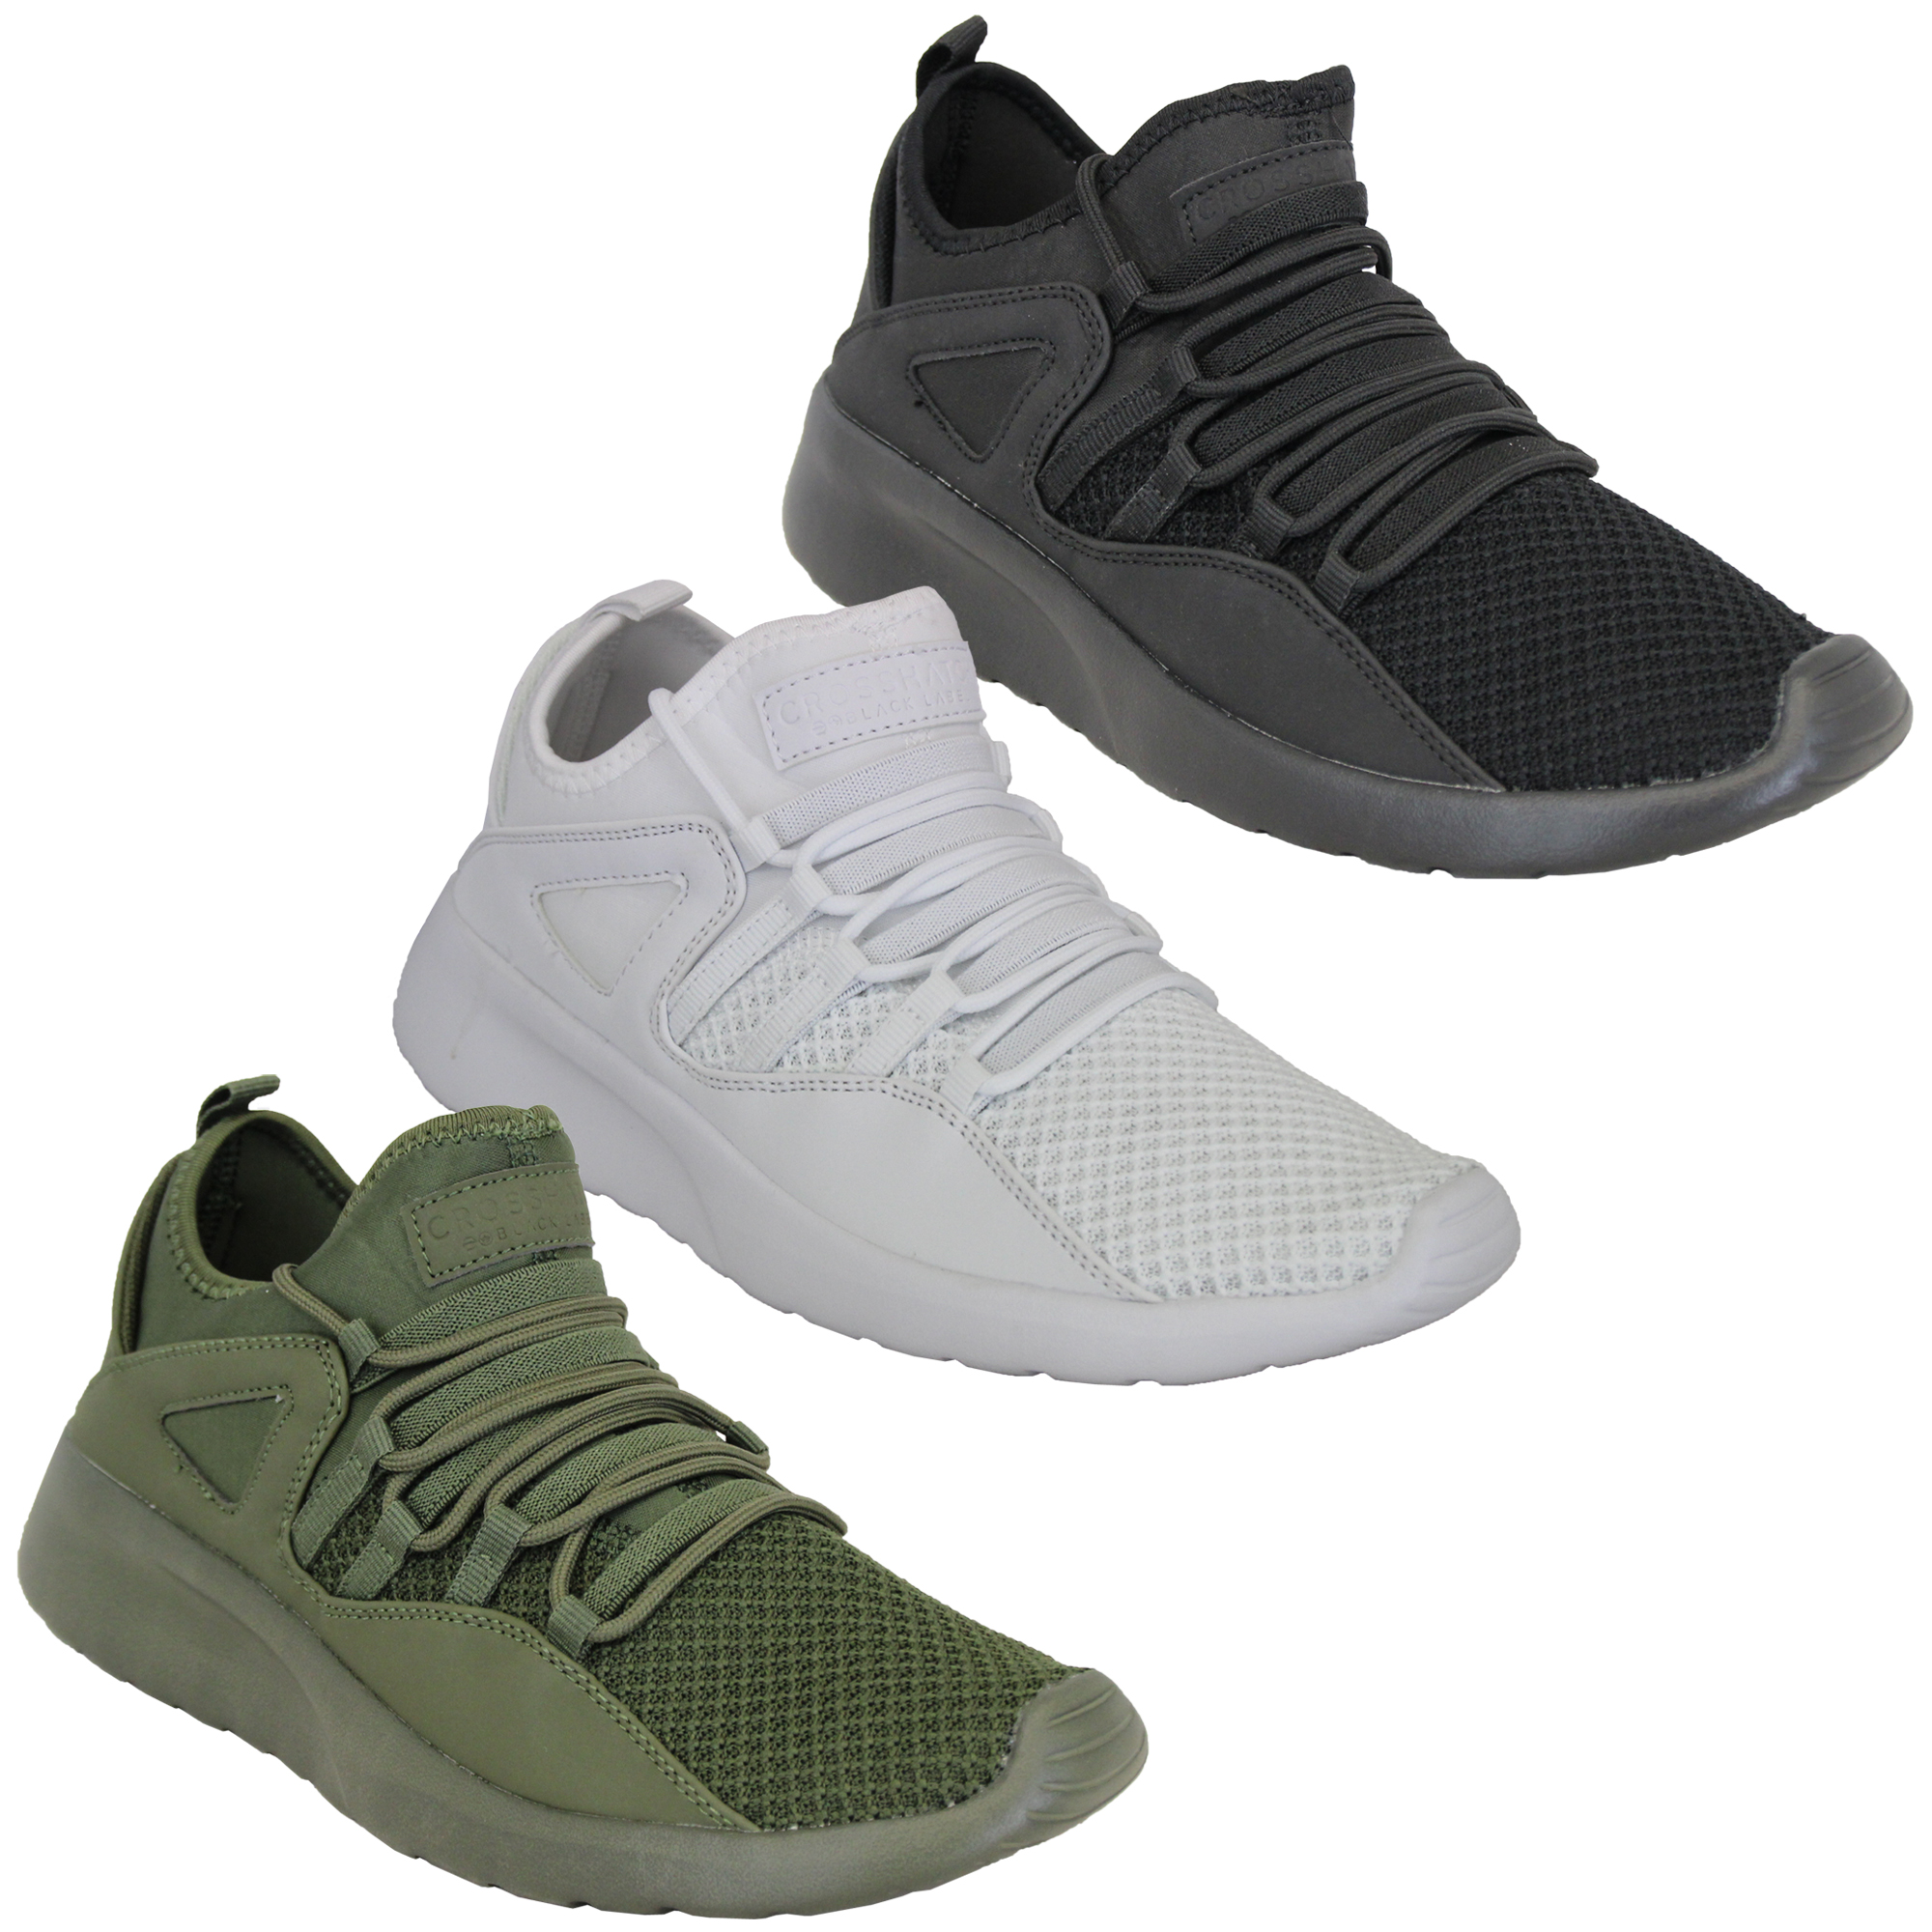 Mens-Trainers-Crosshatch-Running-Speed-Lace-Up-Sneakers-Sports-Gym-Casual-Shoes thumbnail 5